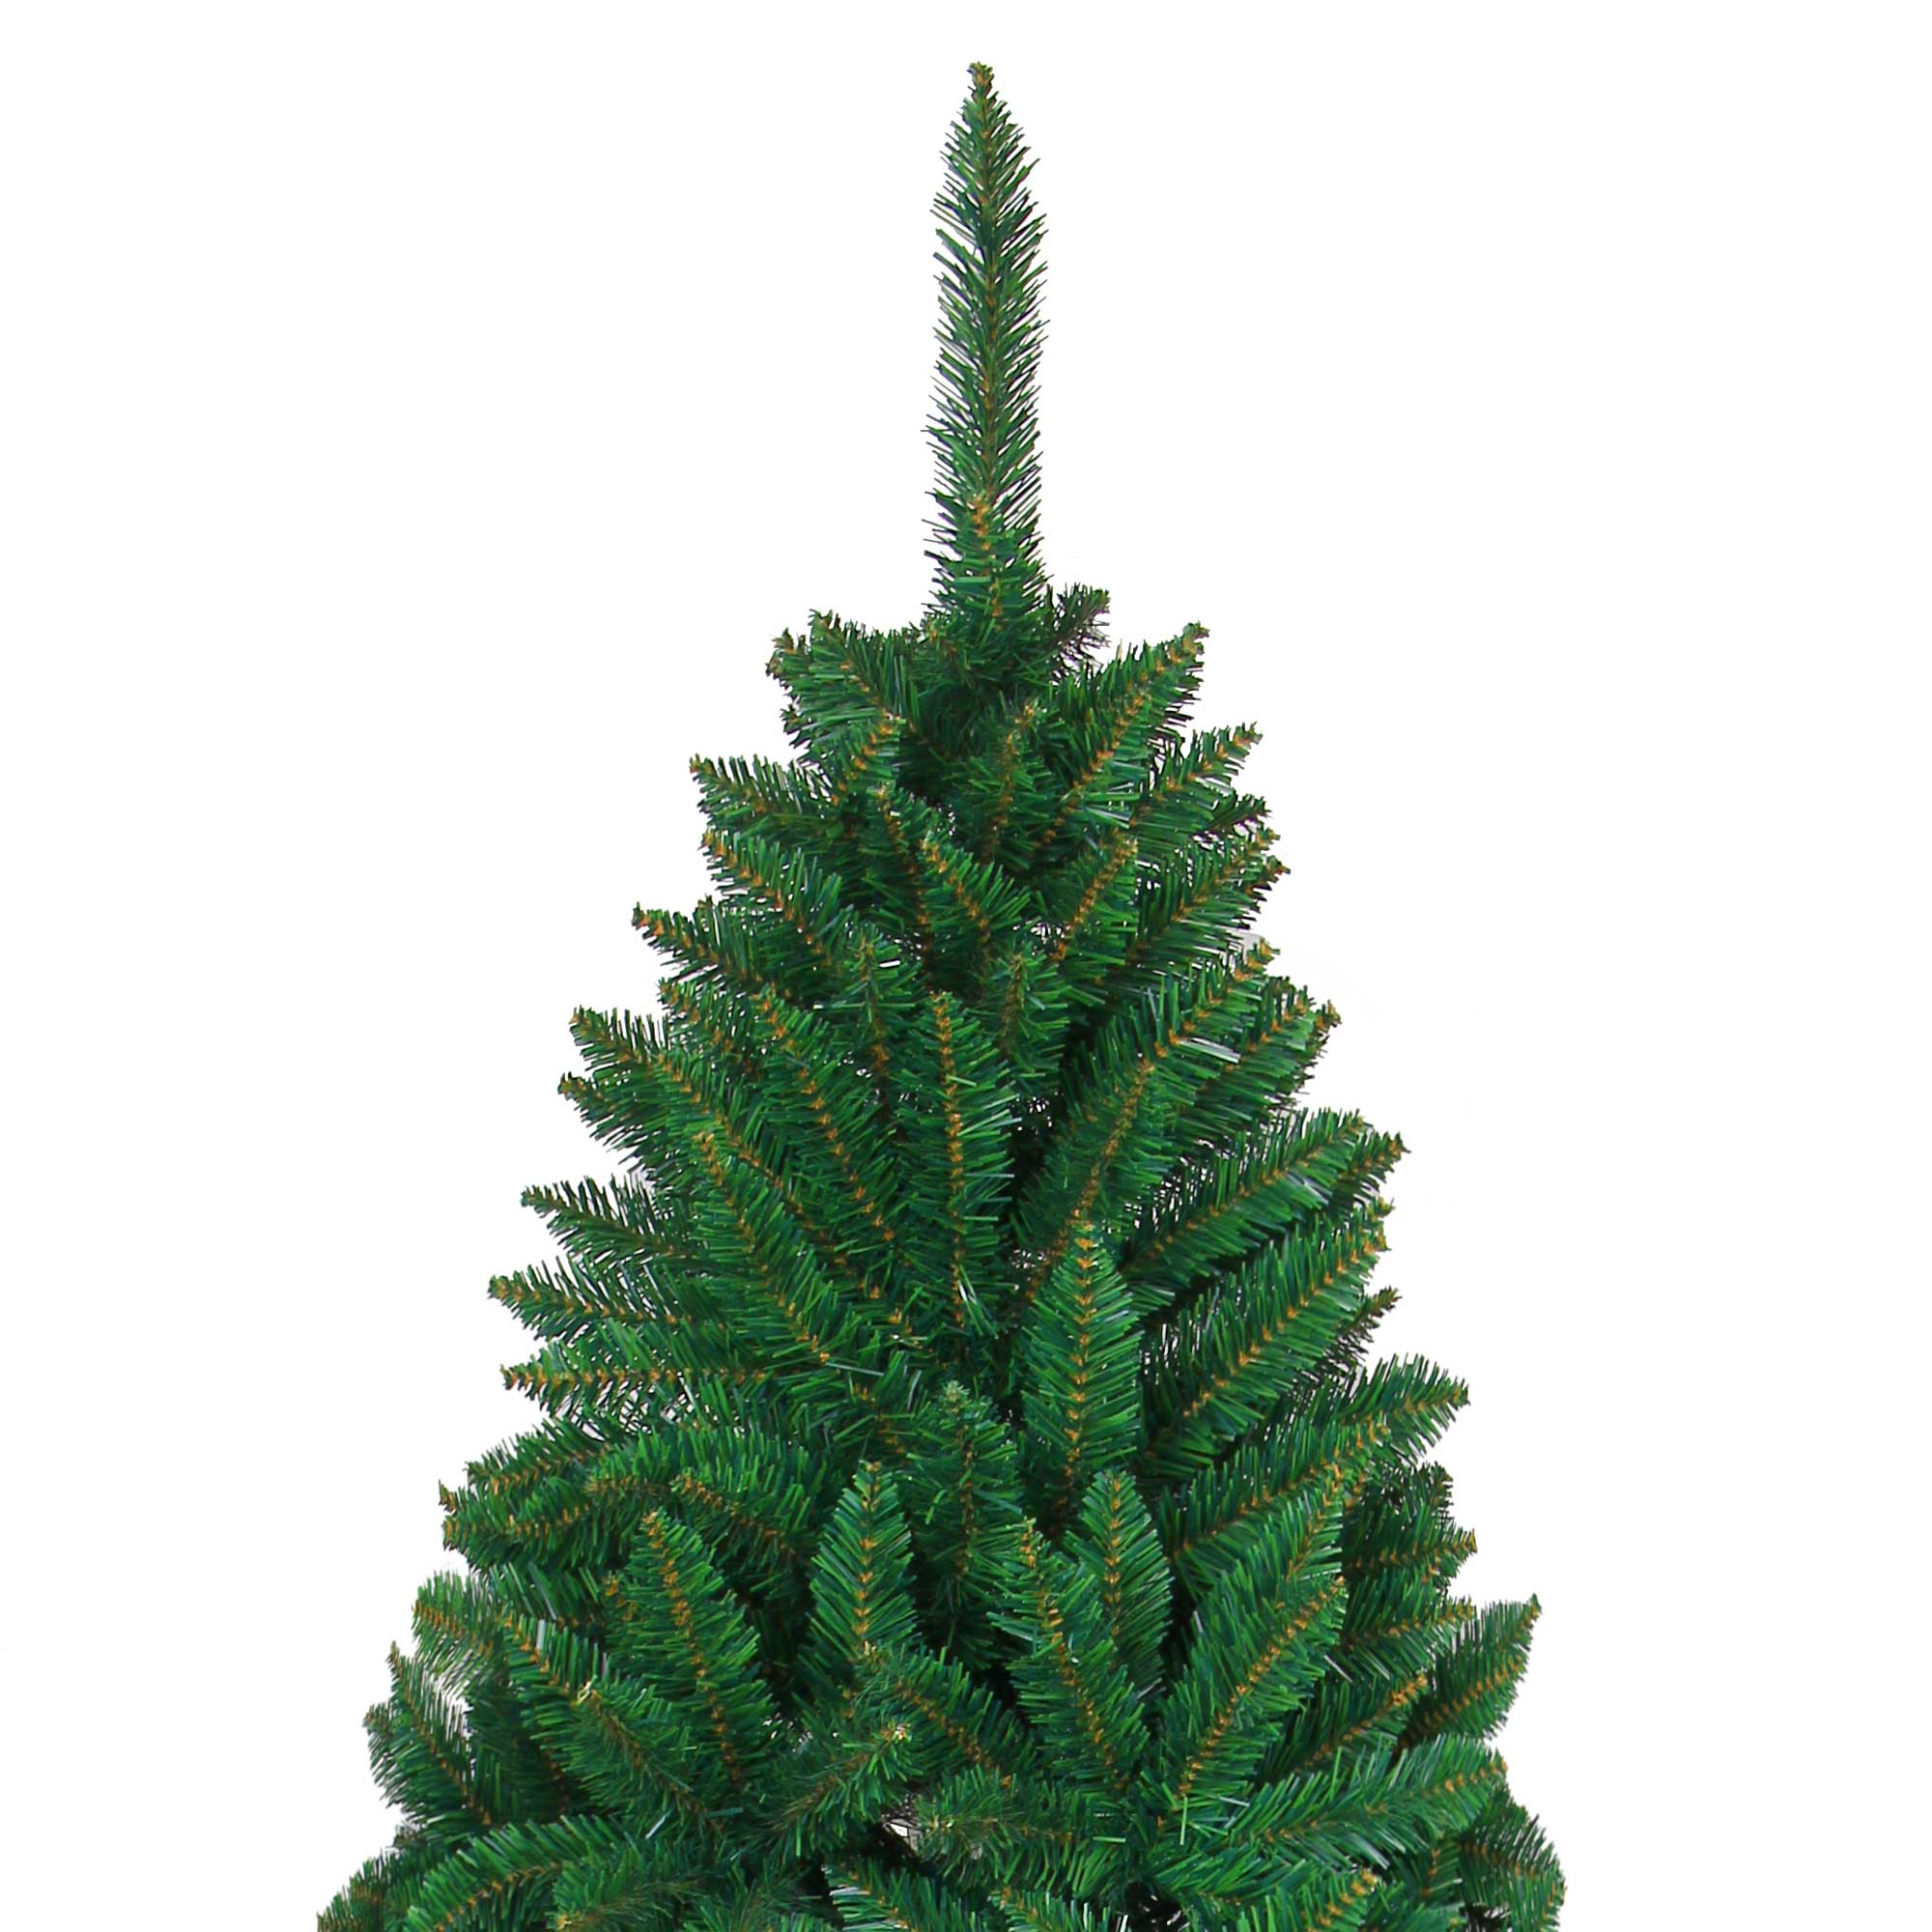 Artificial Christmas Tree Green Imperial Pine Deluxe Xmas Tree